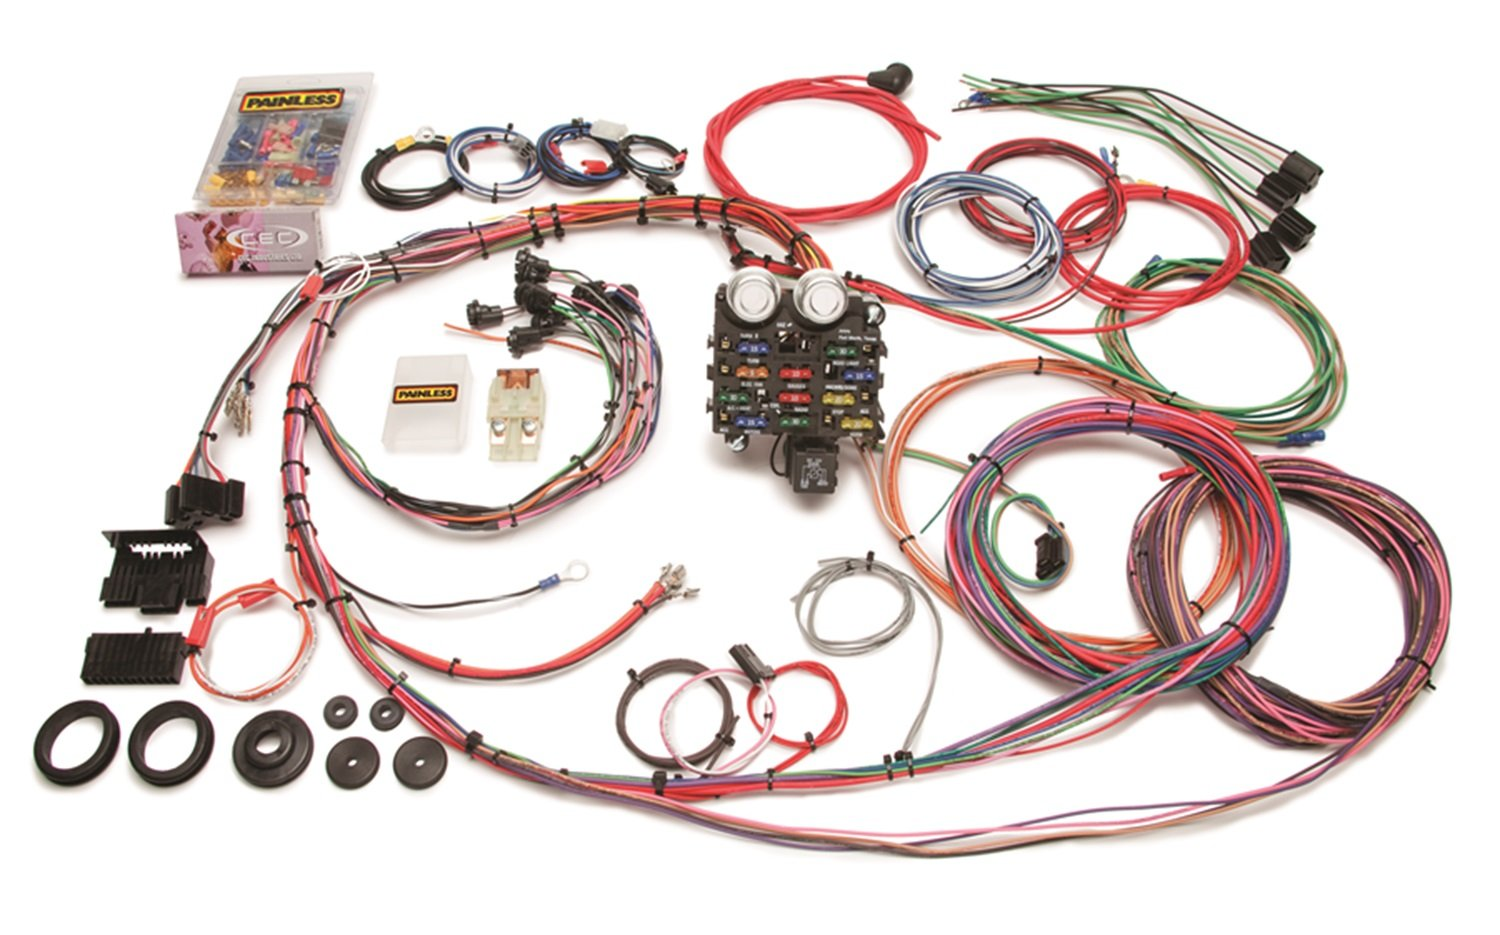 71Ove05FJxL._SL1500_ amazon com painless 10112 12 circuit pickup harness automotive painless wire harness at bayanpartner.co